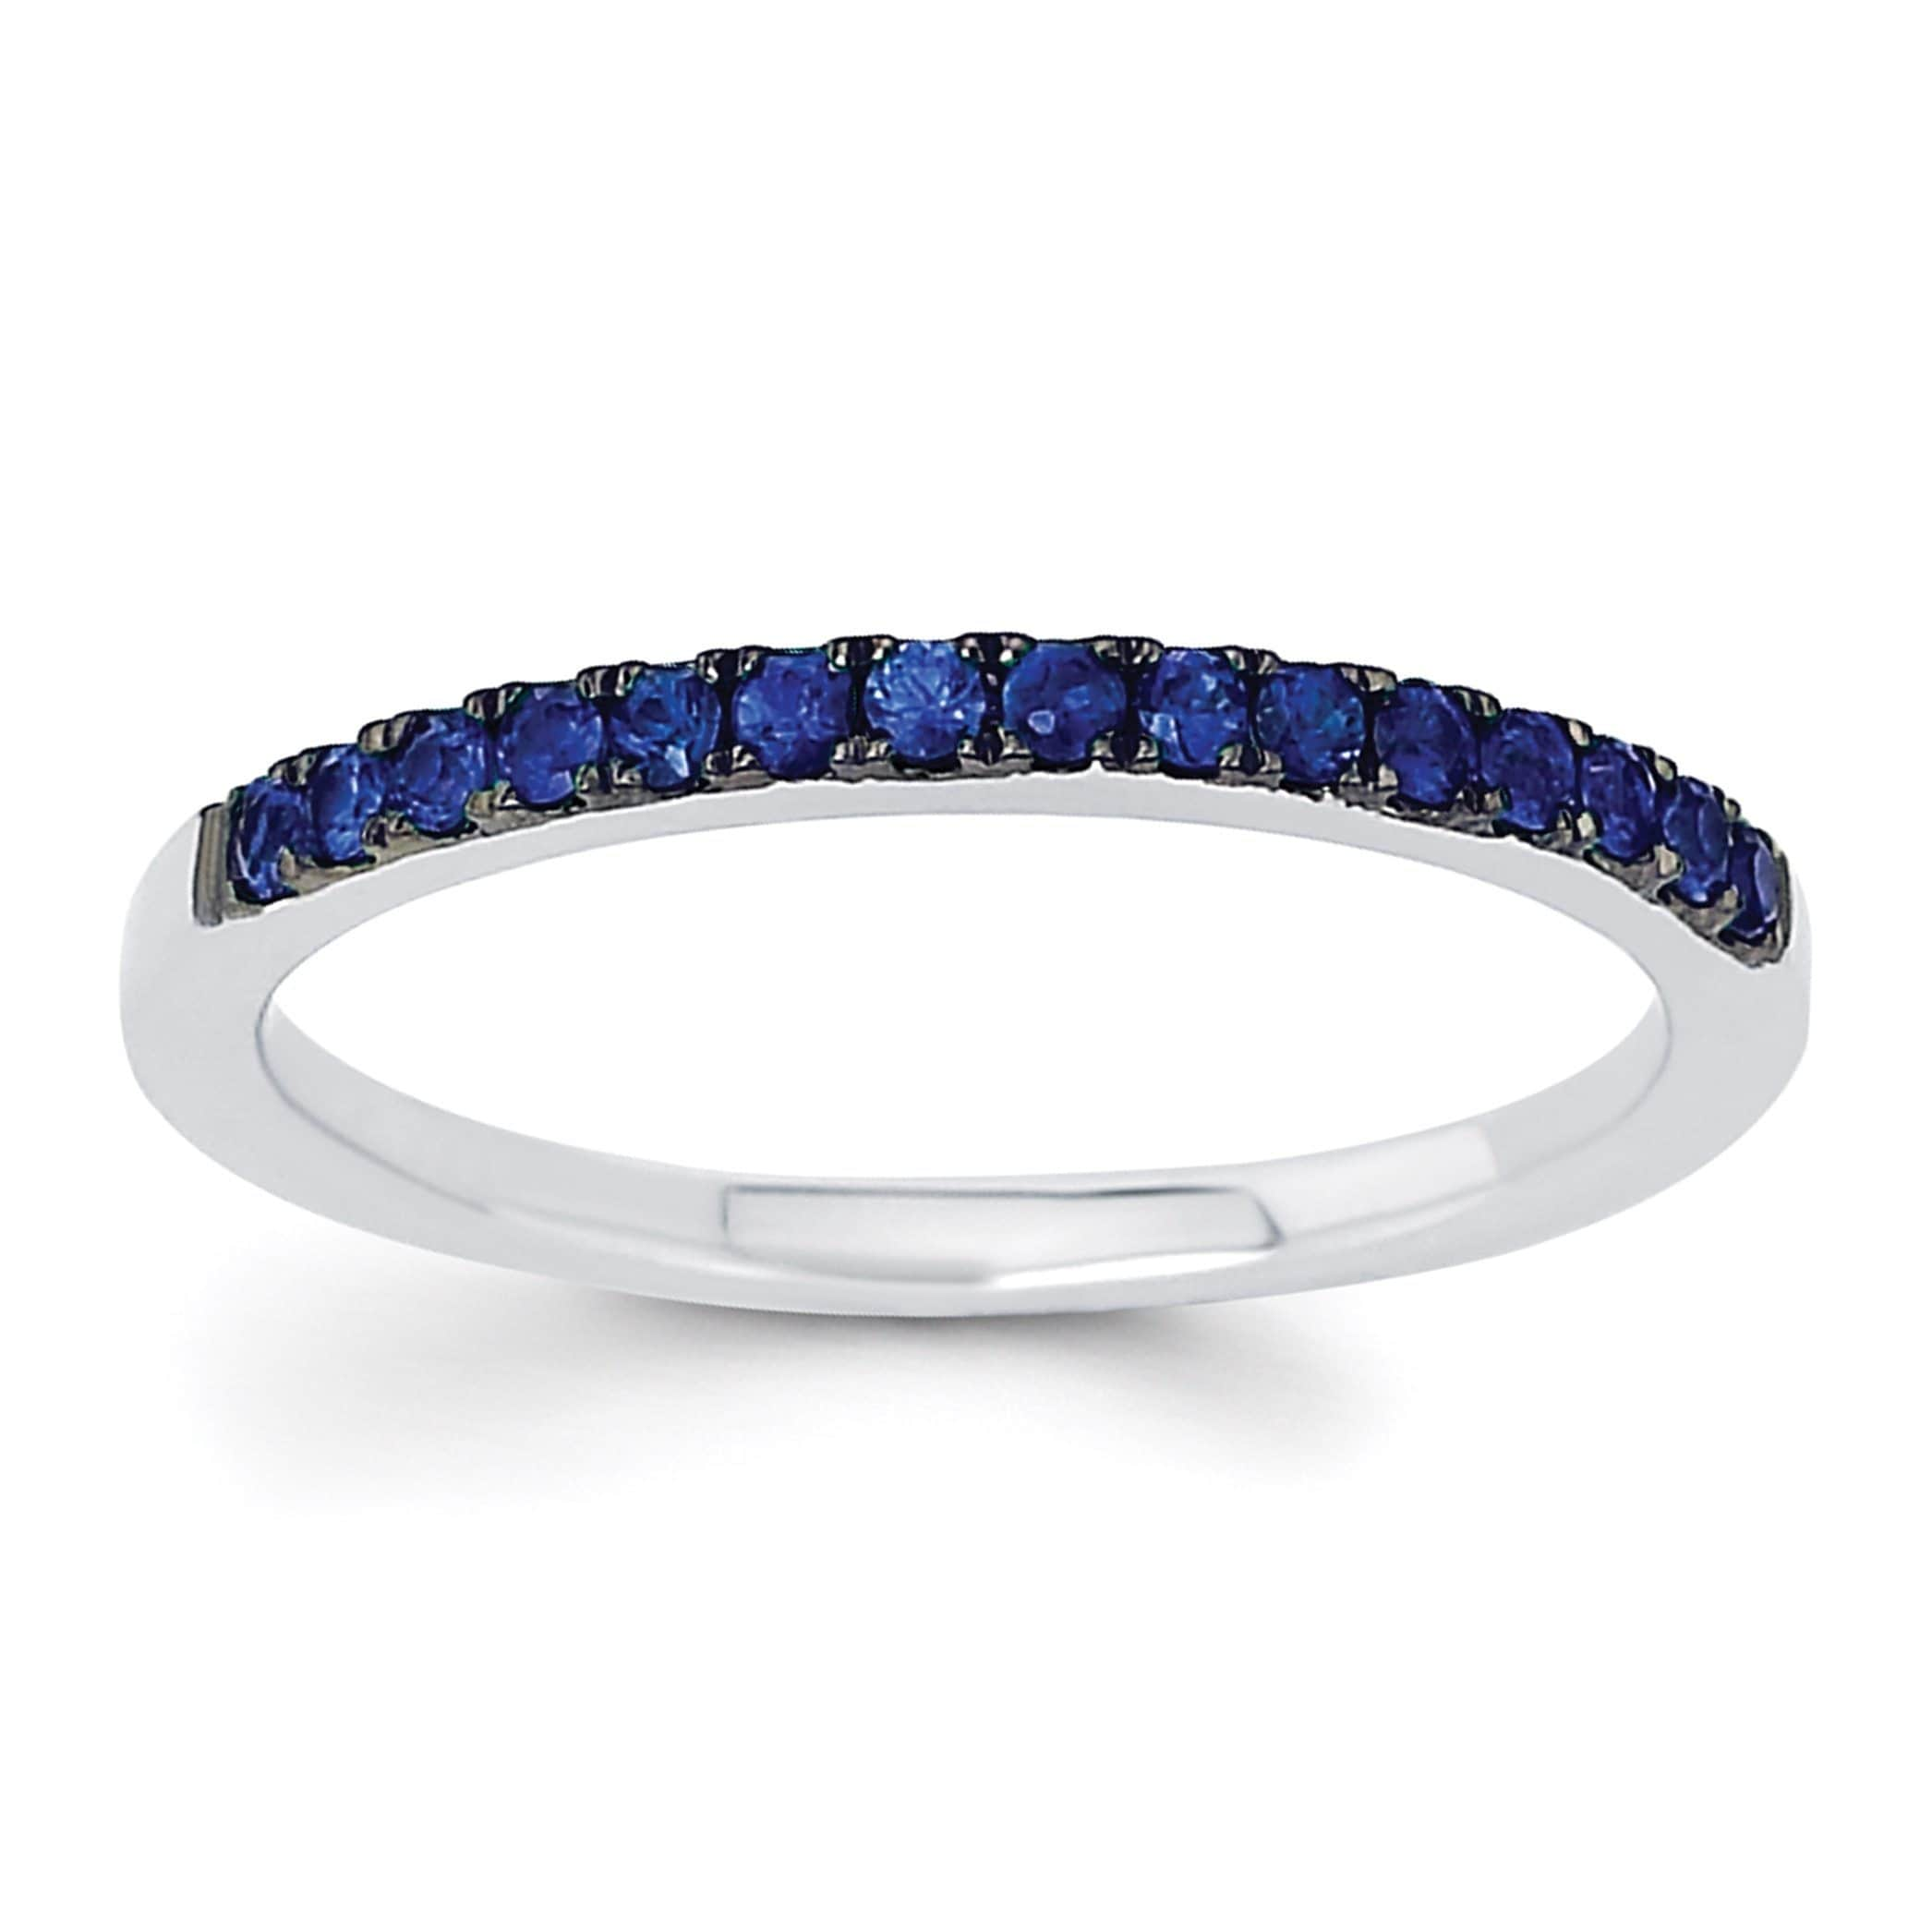 sapphire with a bestsellers ring diamond beautiful diamondland jewelry rings saffire